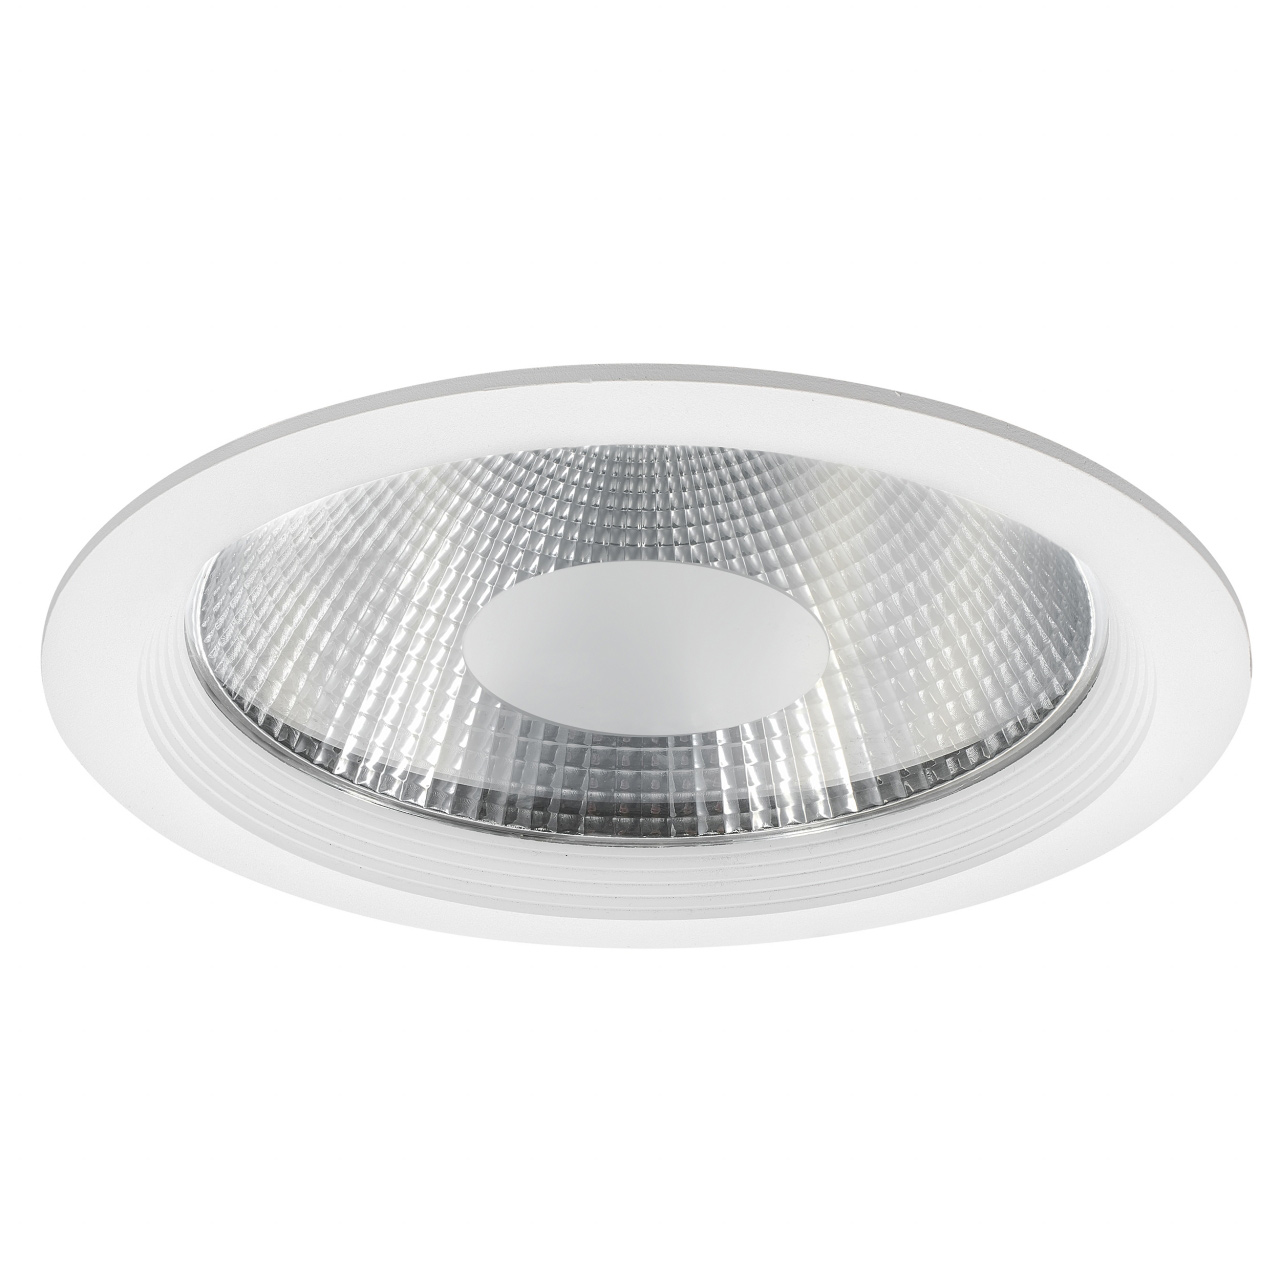 Светильник Forto LED 40W 3600LM 120G 3000K Lightstar 223402